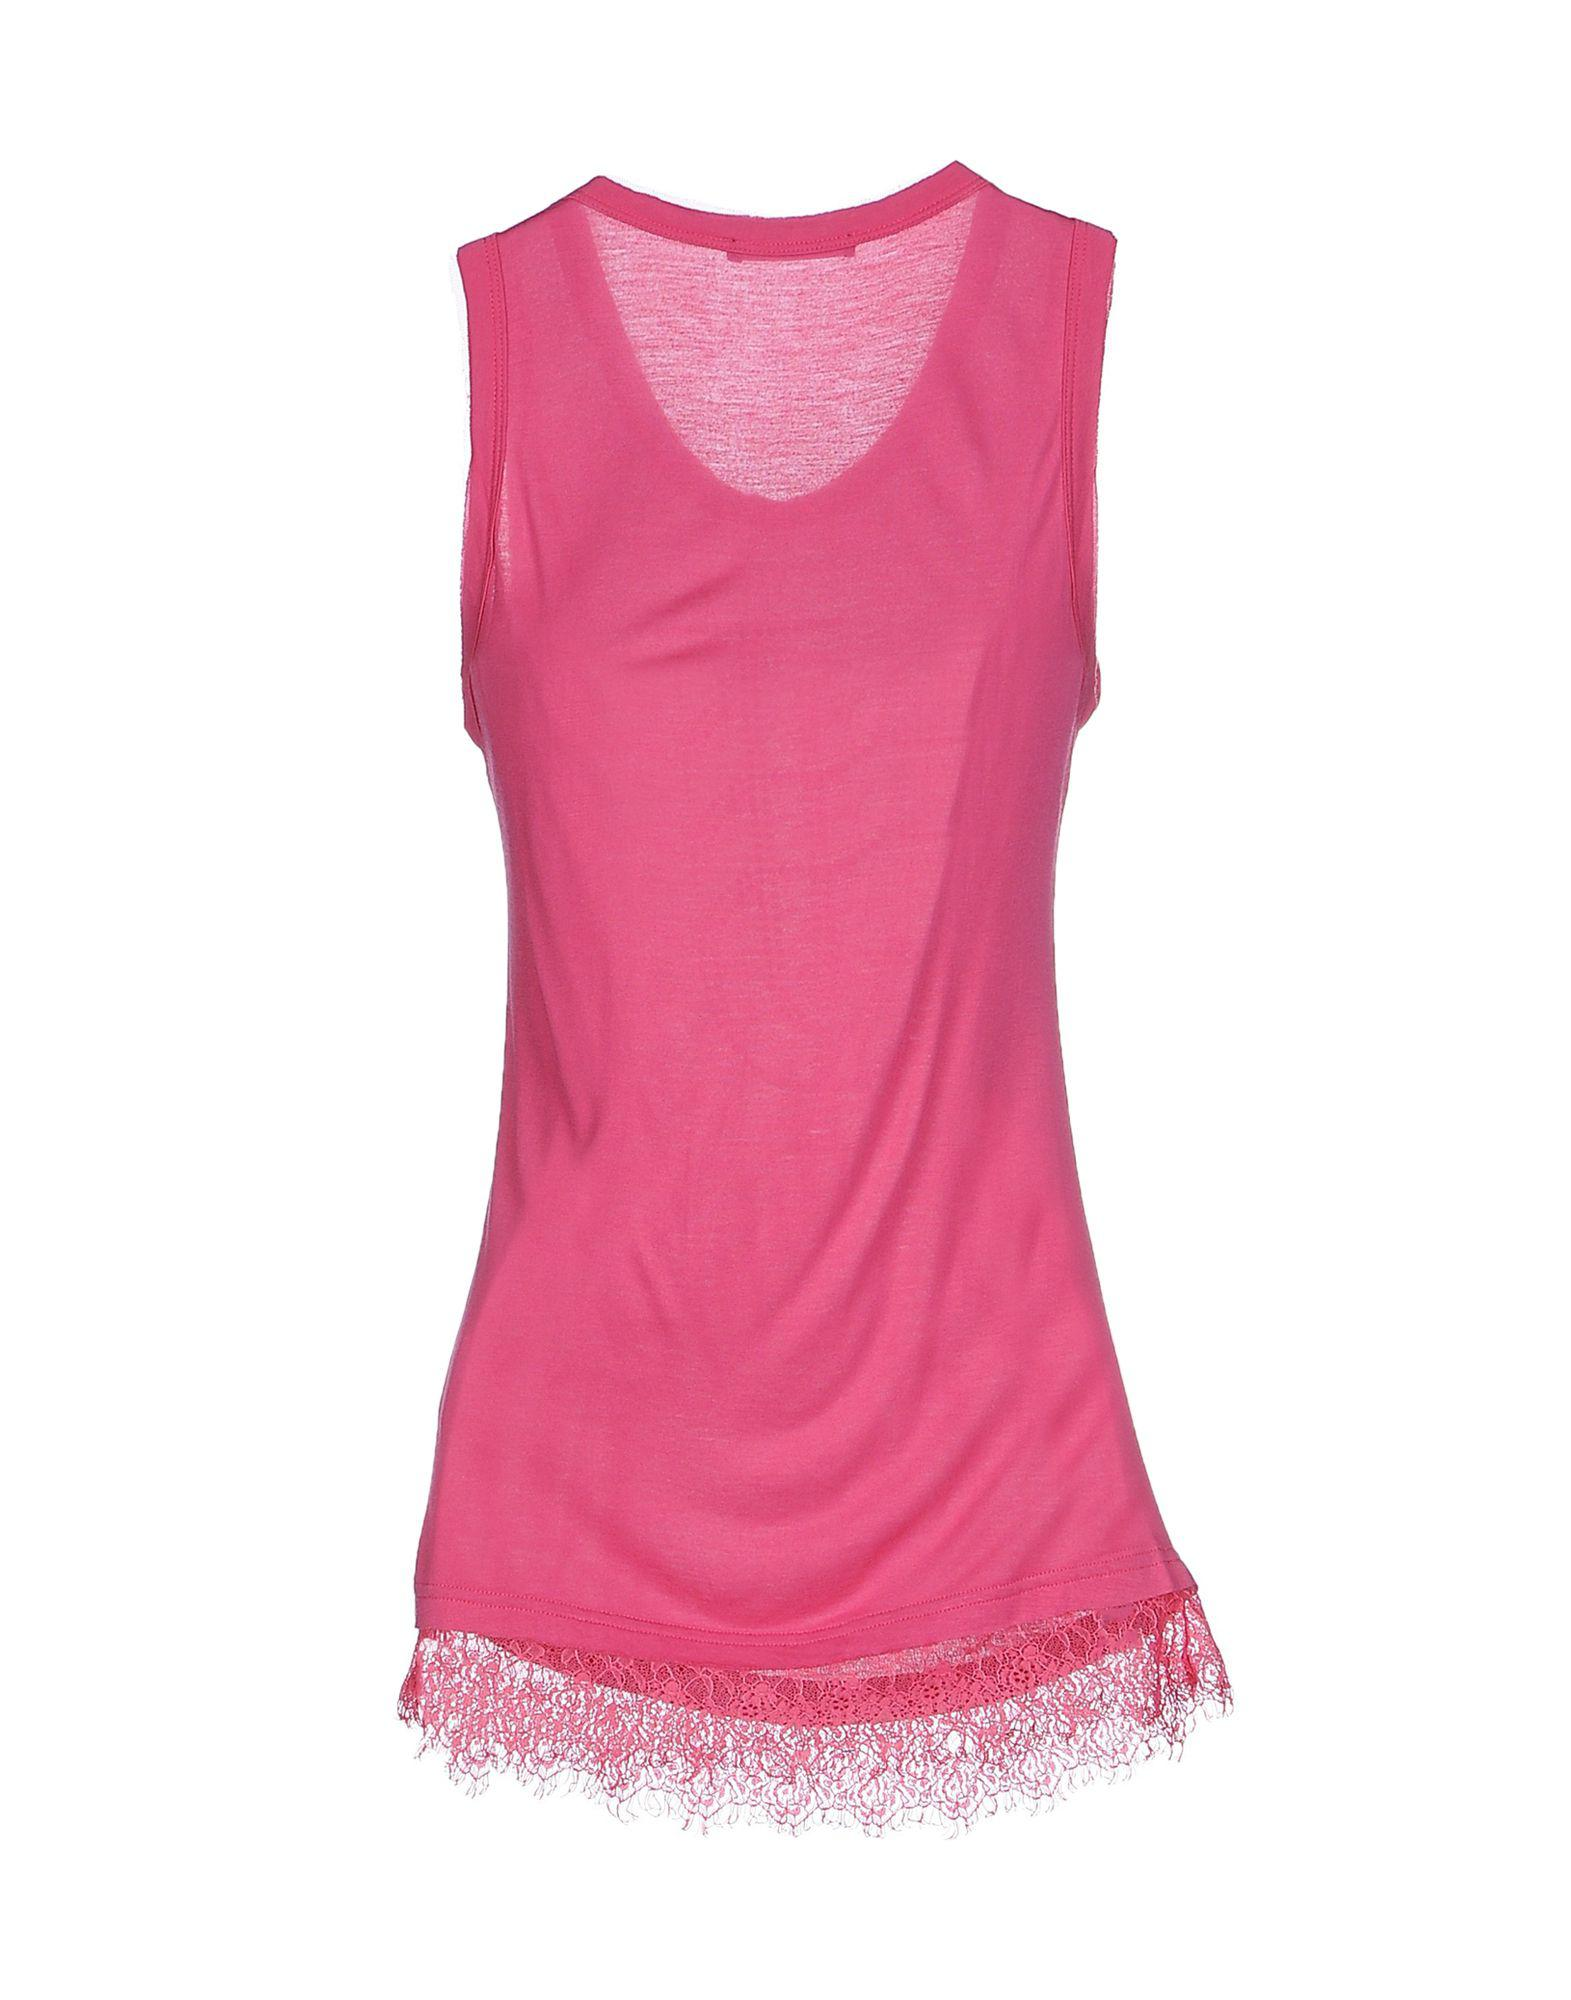 Twin Set Lace Tank Top in Fuchsia (Purple)